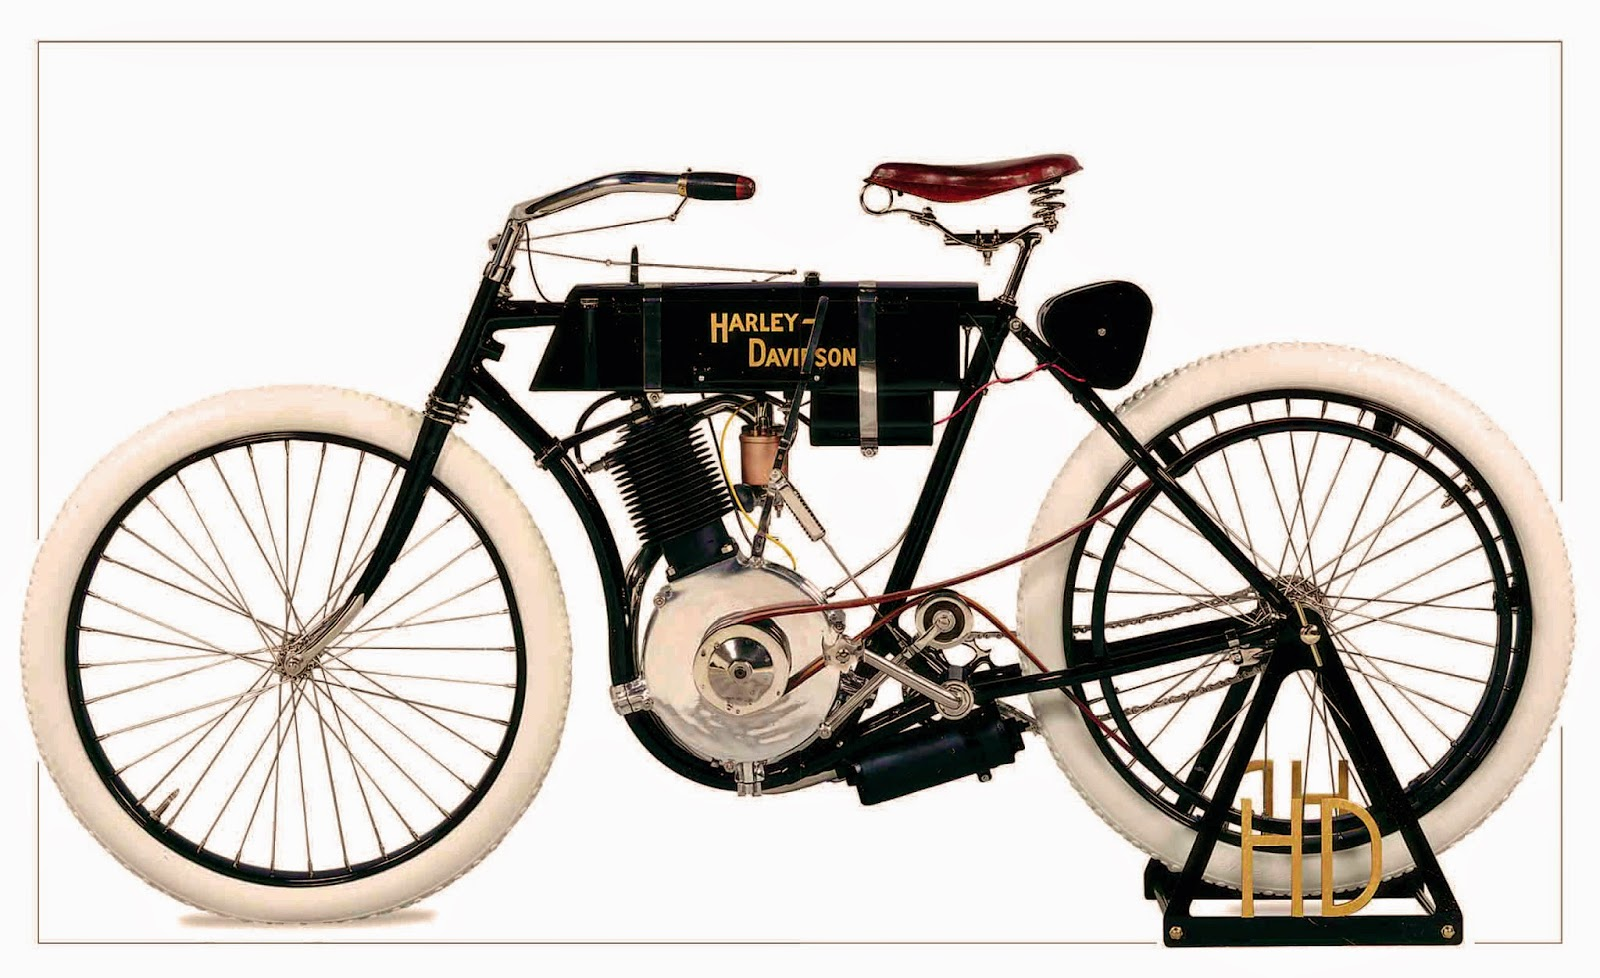 Harley Davidson 1905 Model No.1